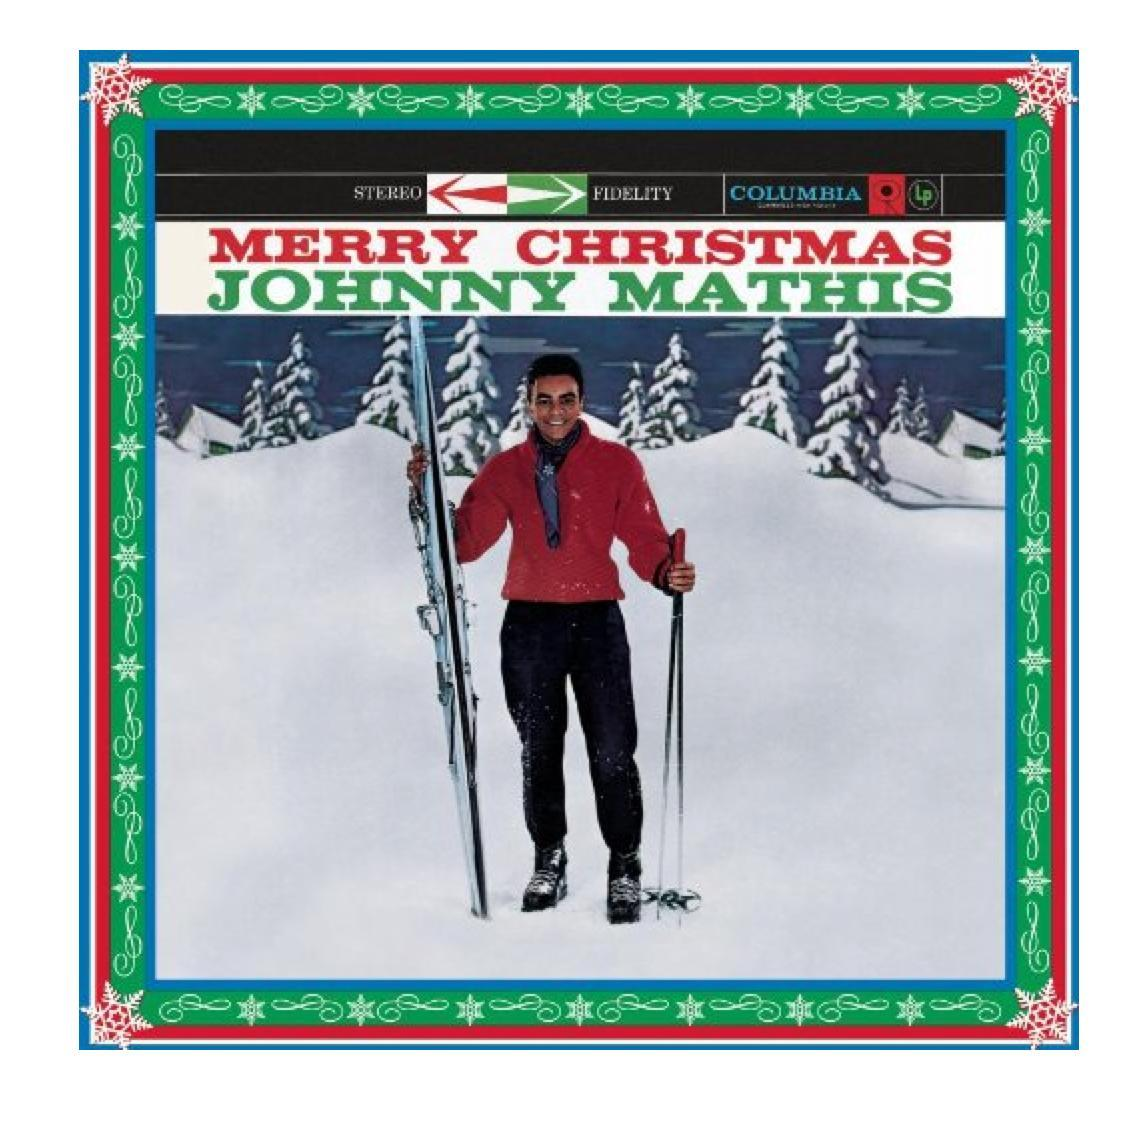 Mr. Christmas, AKA Johnny Mathis, Talks About His Love of Cooking ...